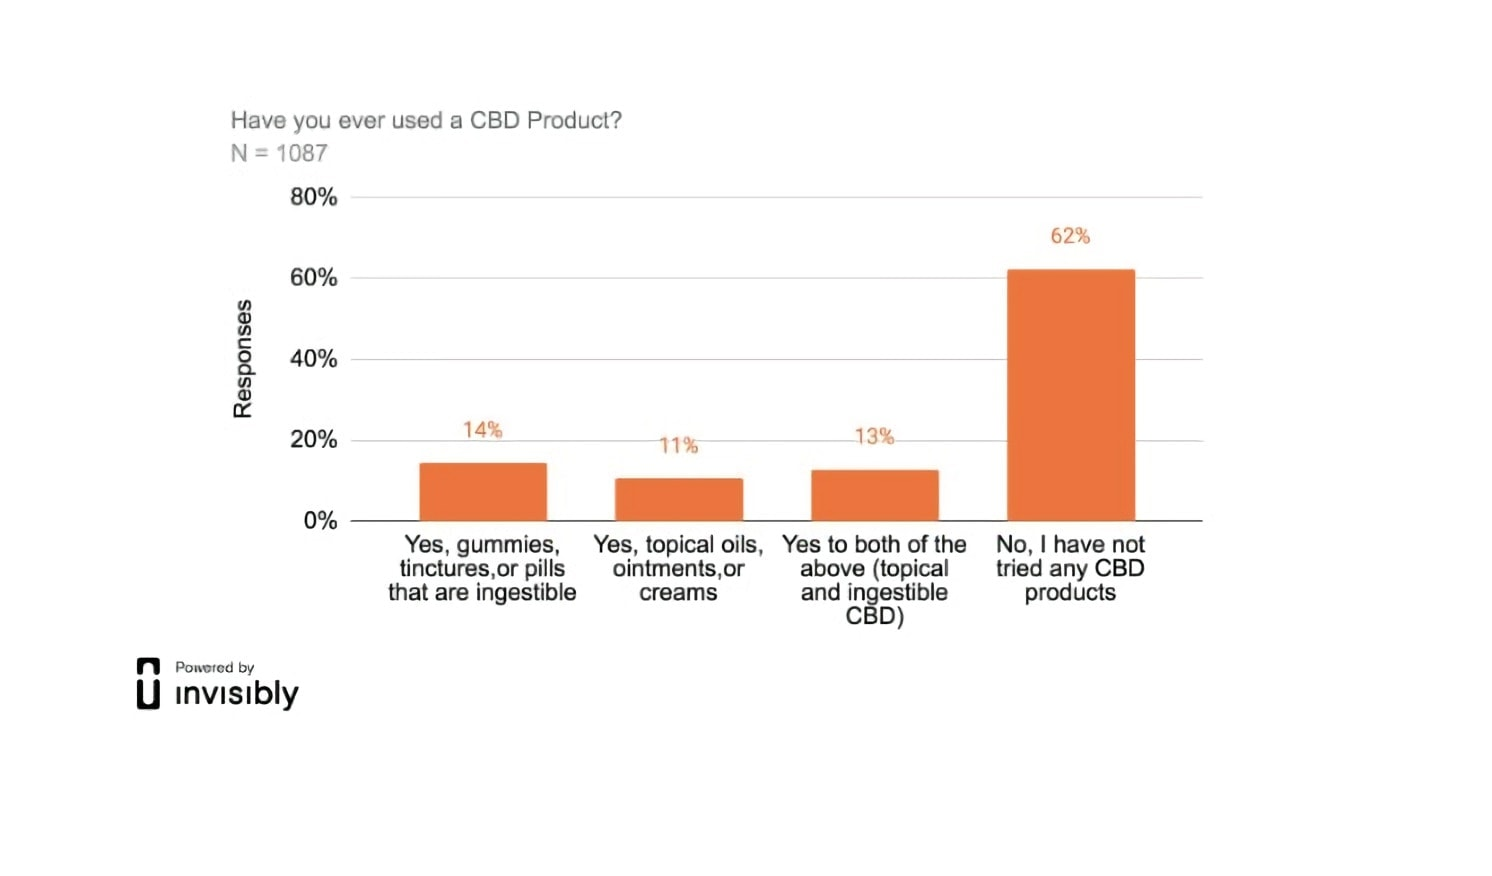 The results of the survey conducted by the Invisible Company to determine whether people used CBD